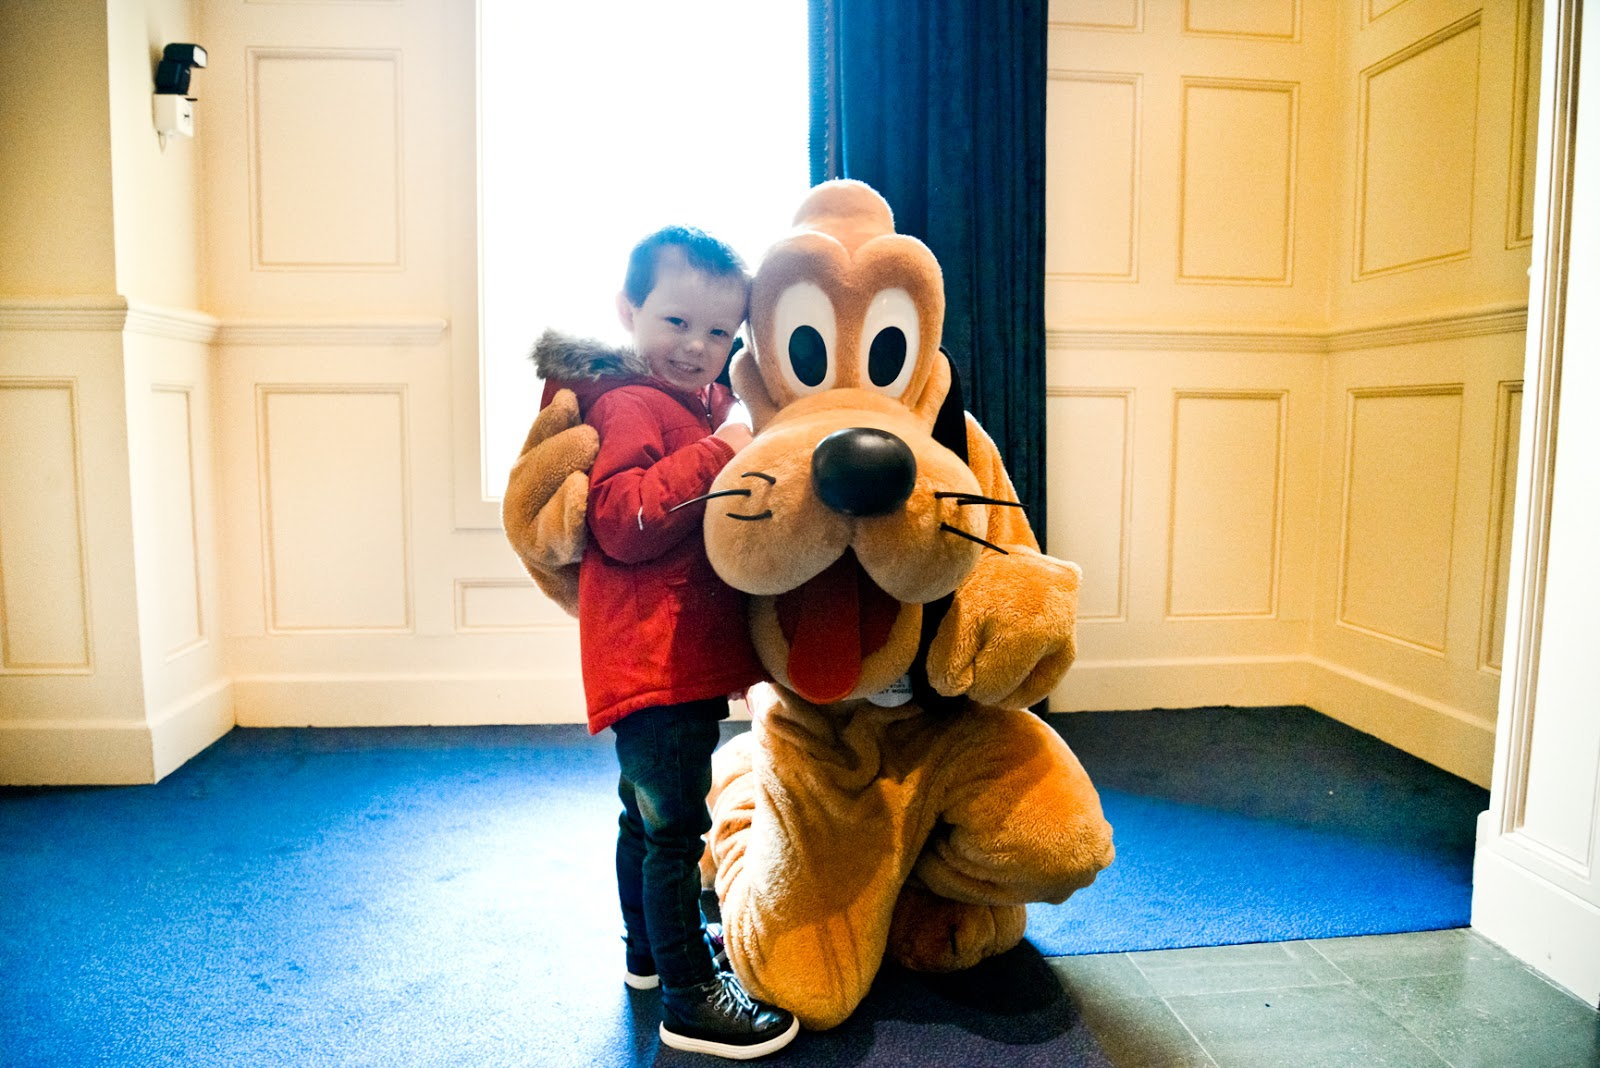 meeting pluto, first time at disneyland paris, disneyland paris travel blog, disneyland, disneyland paris highlights, disneyland paris must do, vegetarians at disneyland paris,